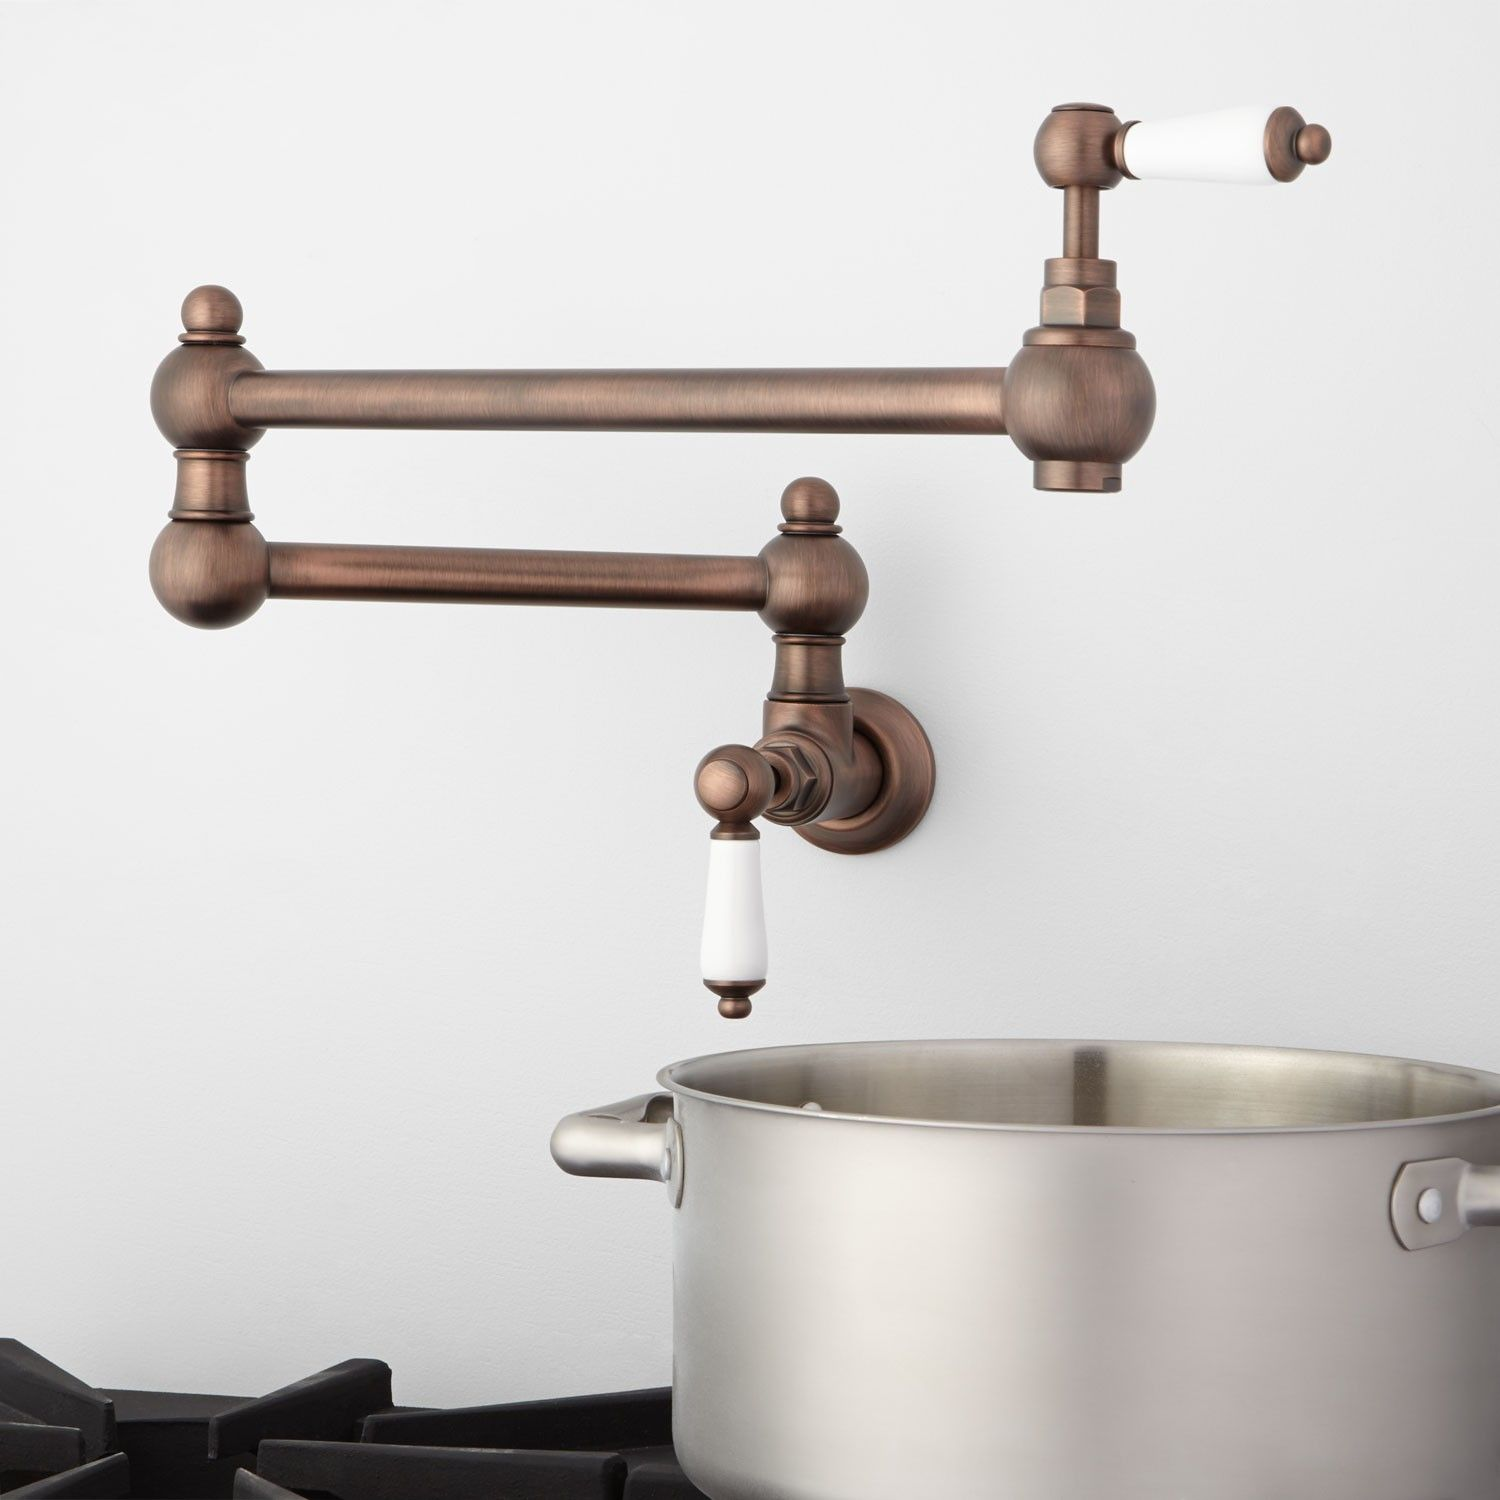 Fatsani Retractable Wall Mount Pot Filler With Porcelain Lever Handles Wall Mount Kitchen Faucet Pot Filler Bronze Kitchen Faucet